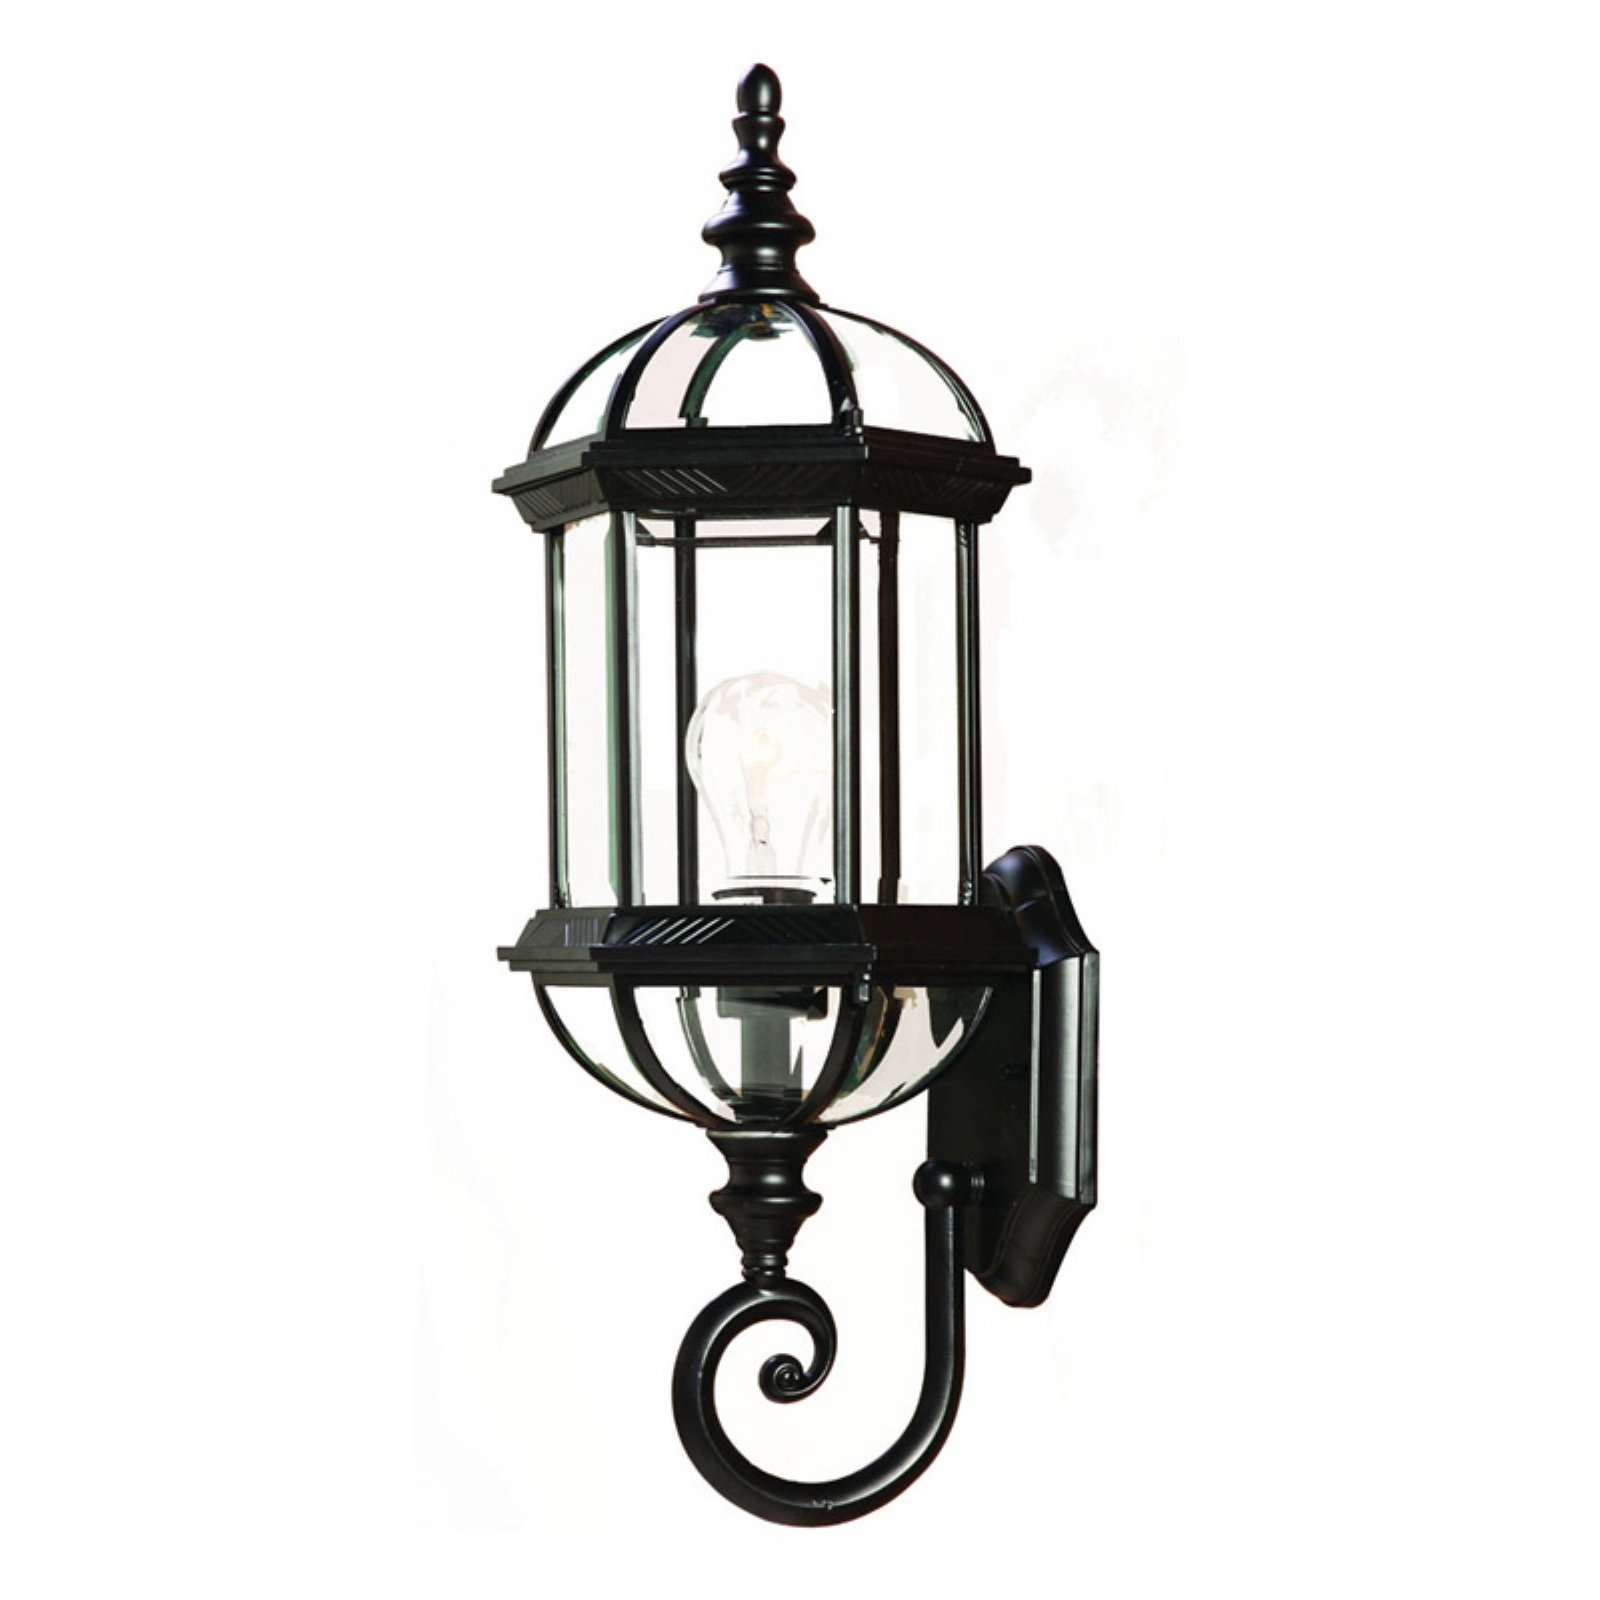 Acclaim Lighting Dover 1 Light Outdoor Wall Mount Light Fixture